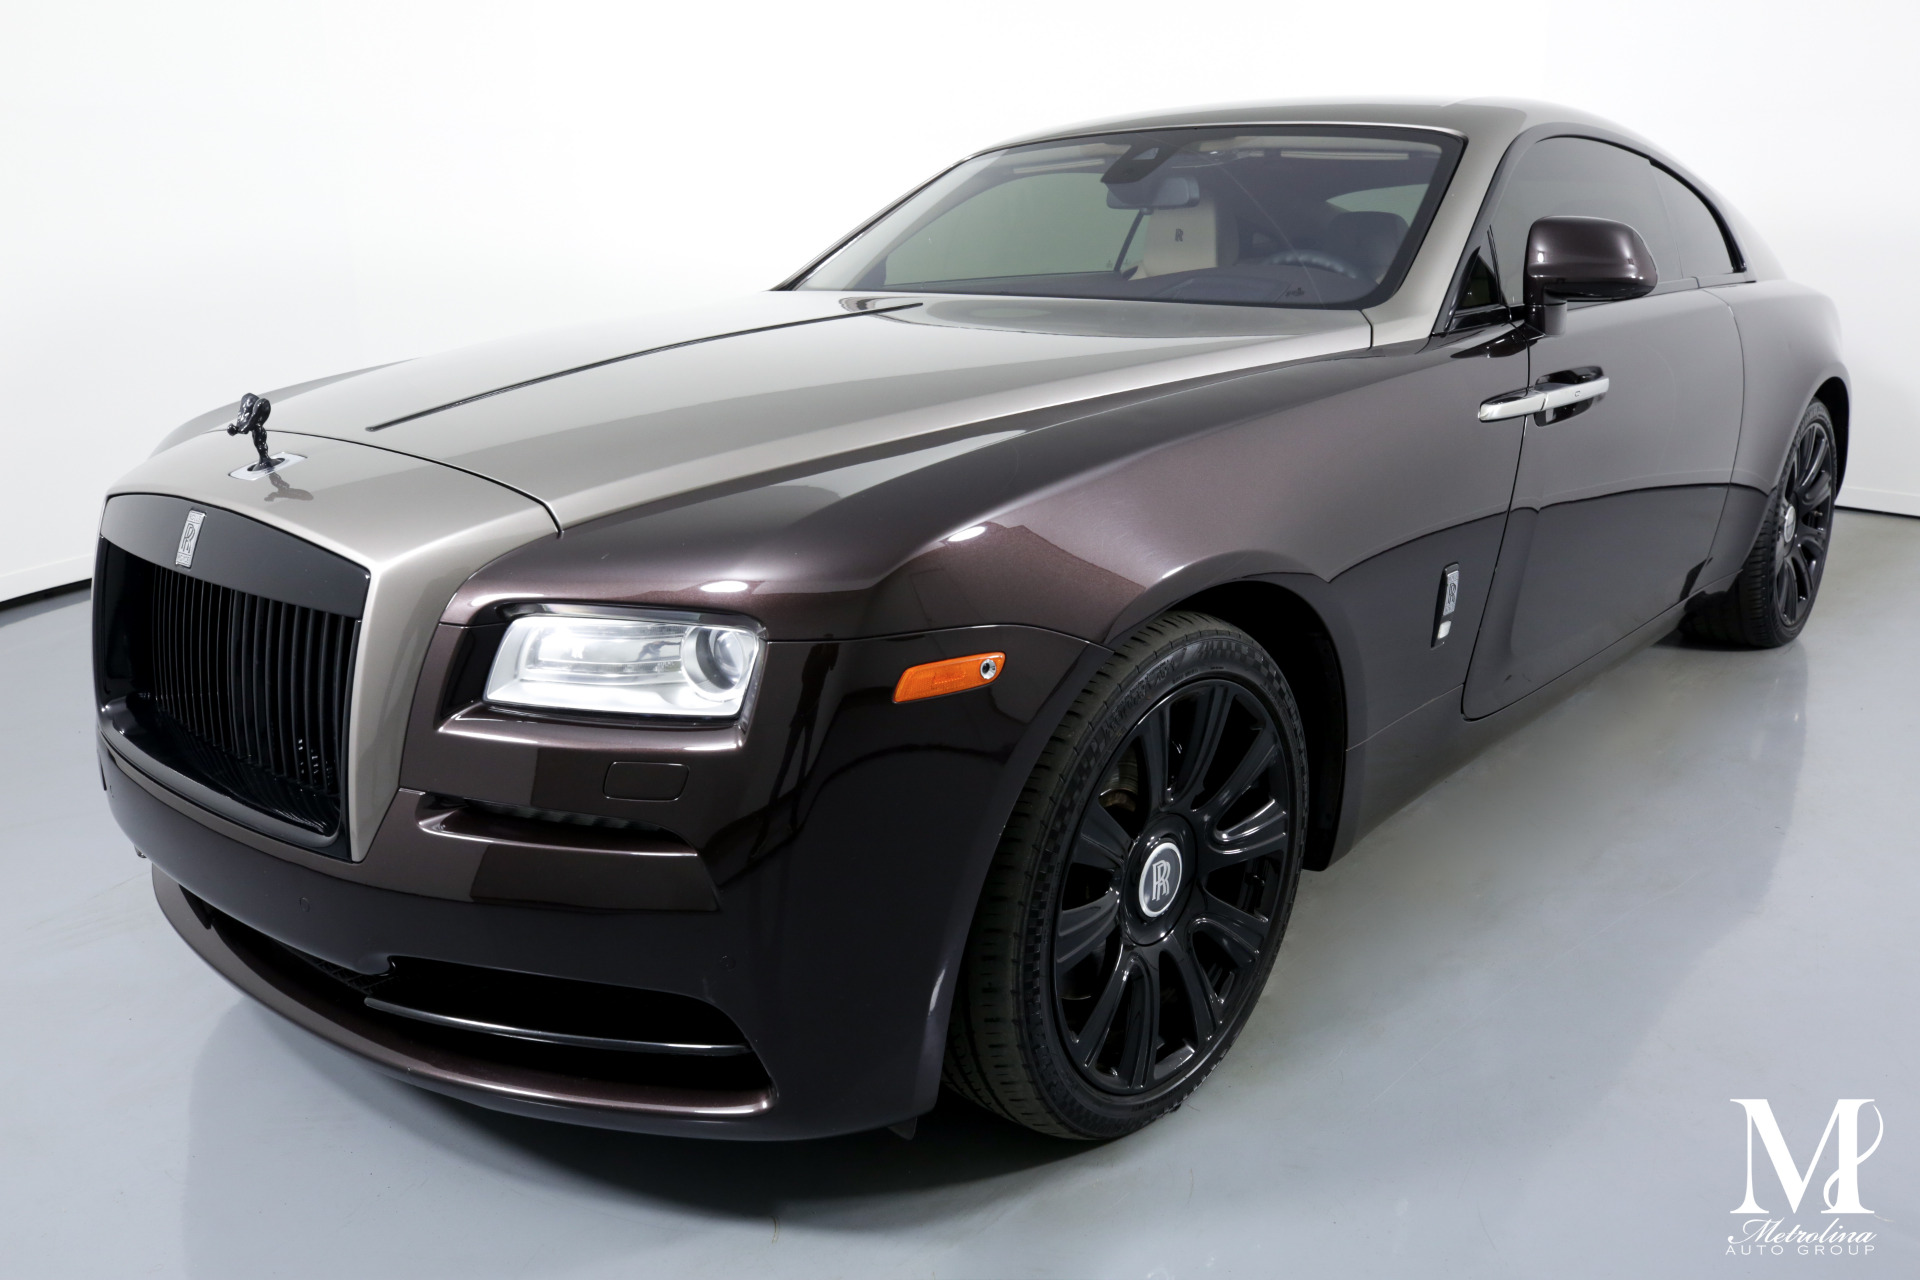 Used 2014 Rolls-Royce Wraith for sale Sold at Metrolina Auto Group in Charlotte NC 28217 - 4